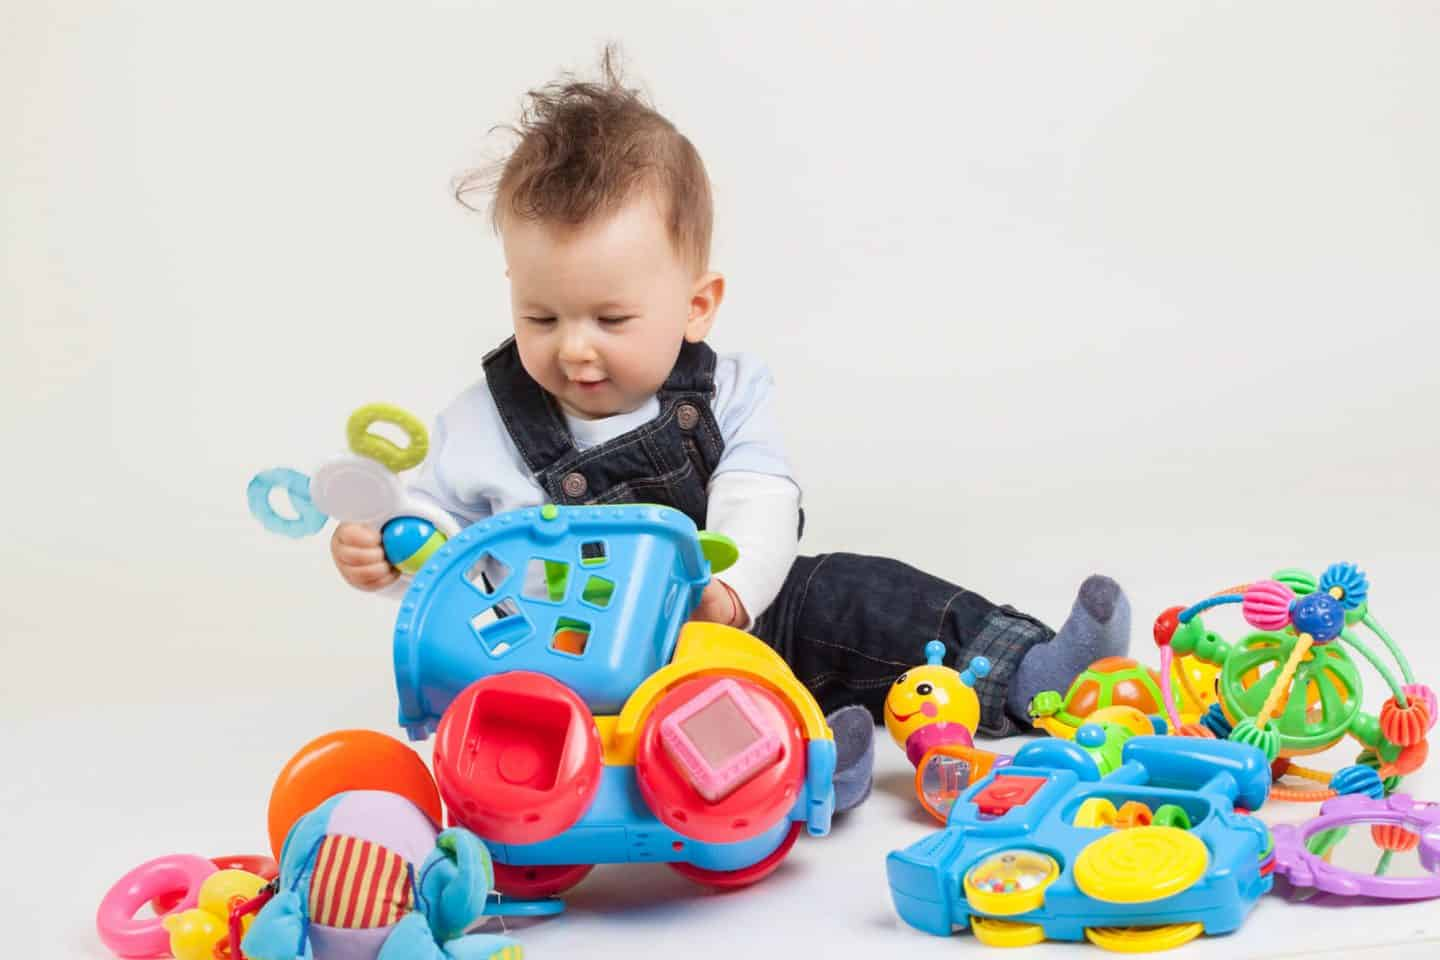 Clean toys - Help Your Children Fight Against Viruses and Bacteria